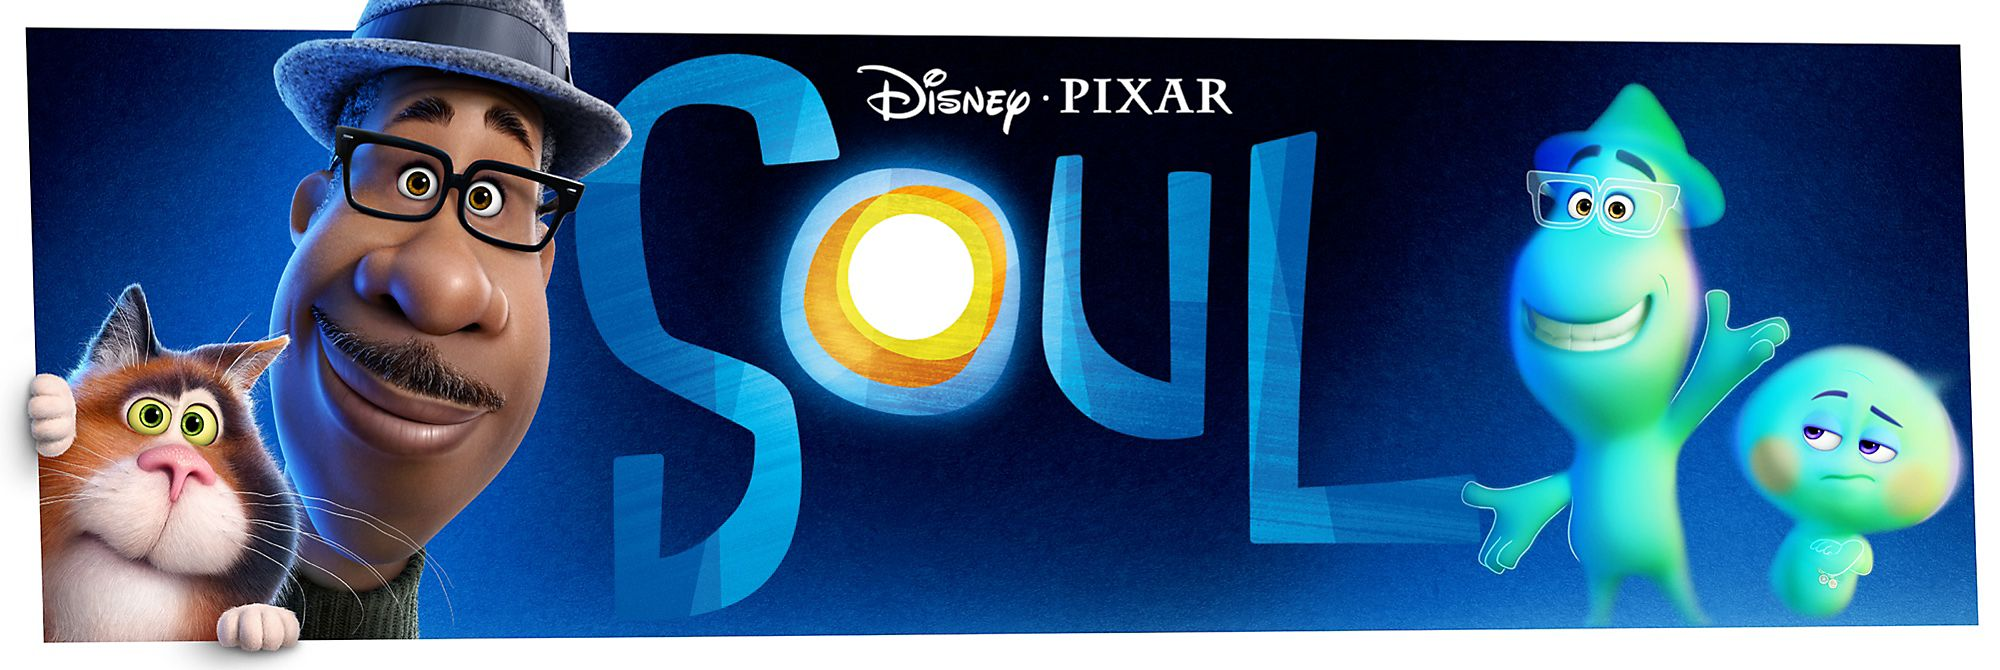 Soul In streaming ora in esclusiva su Disney+